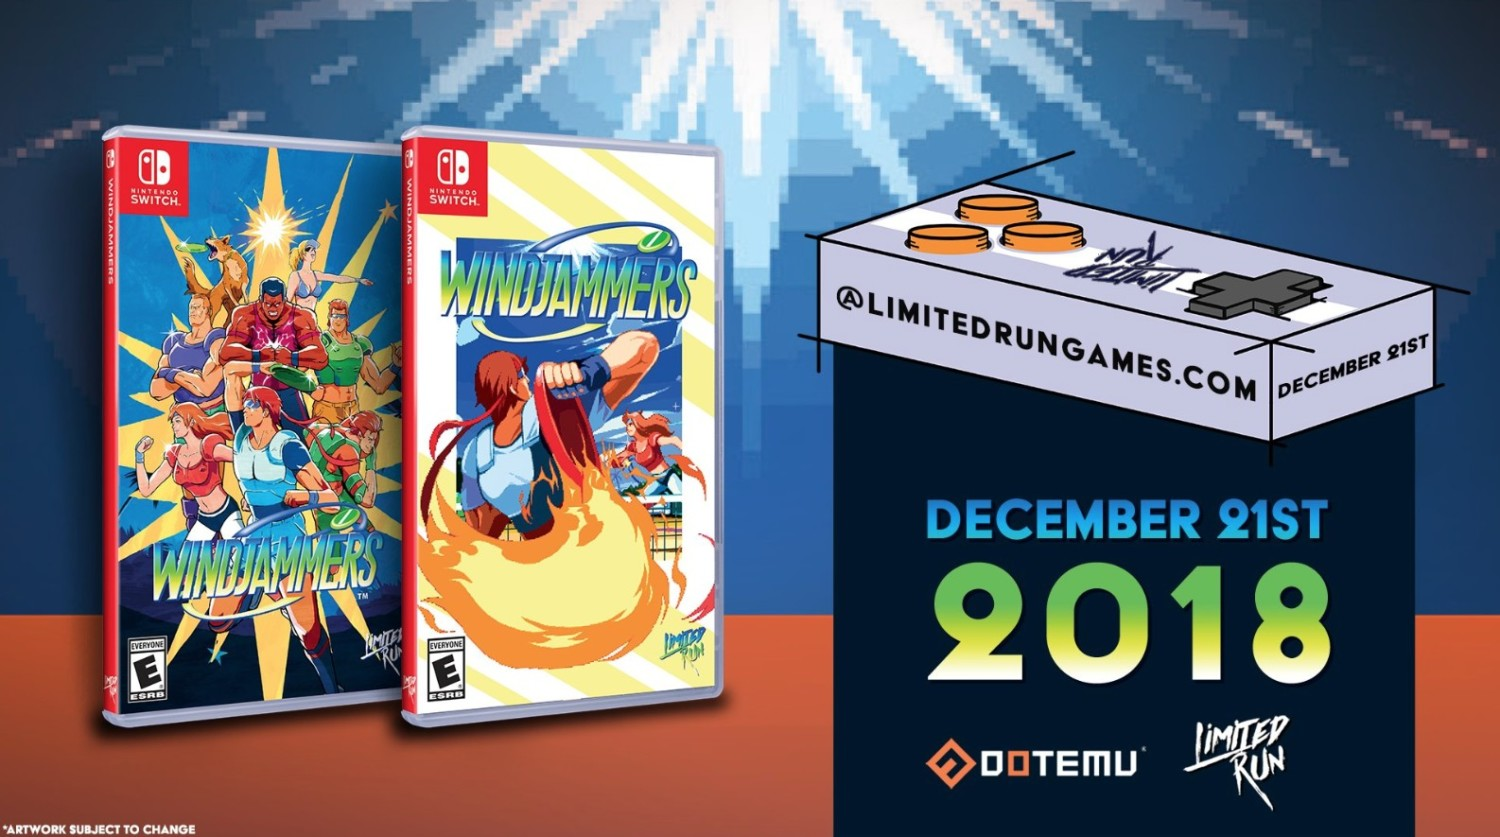 Windjammers, Celeste, Limited Run Games, Kinda funny, Physical